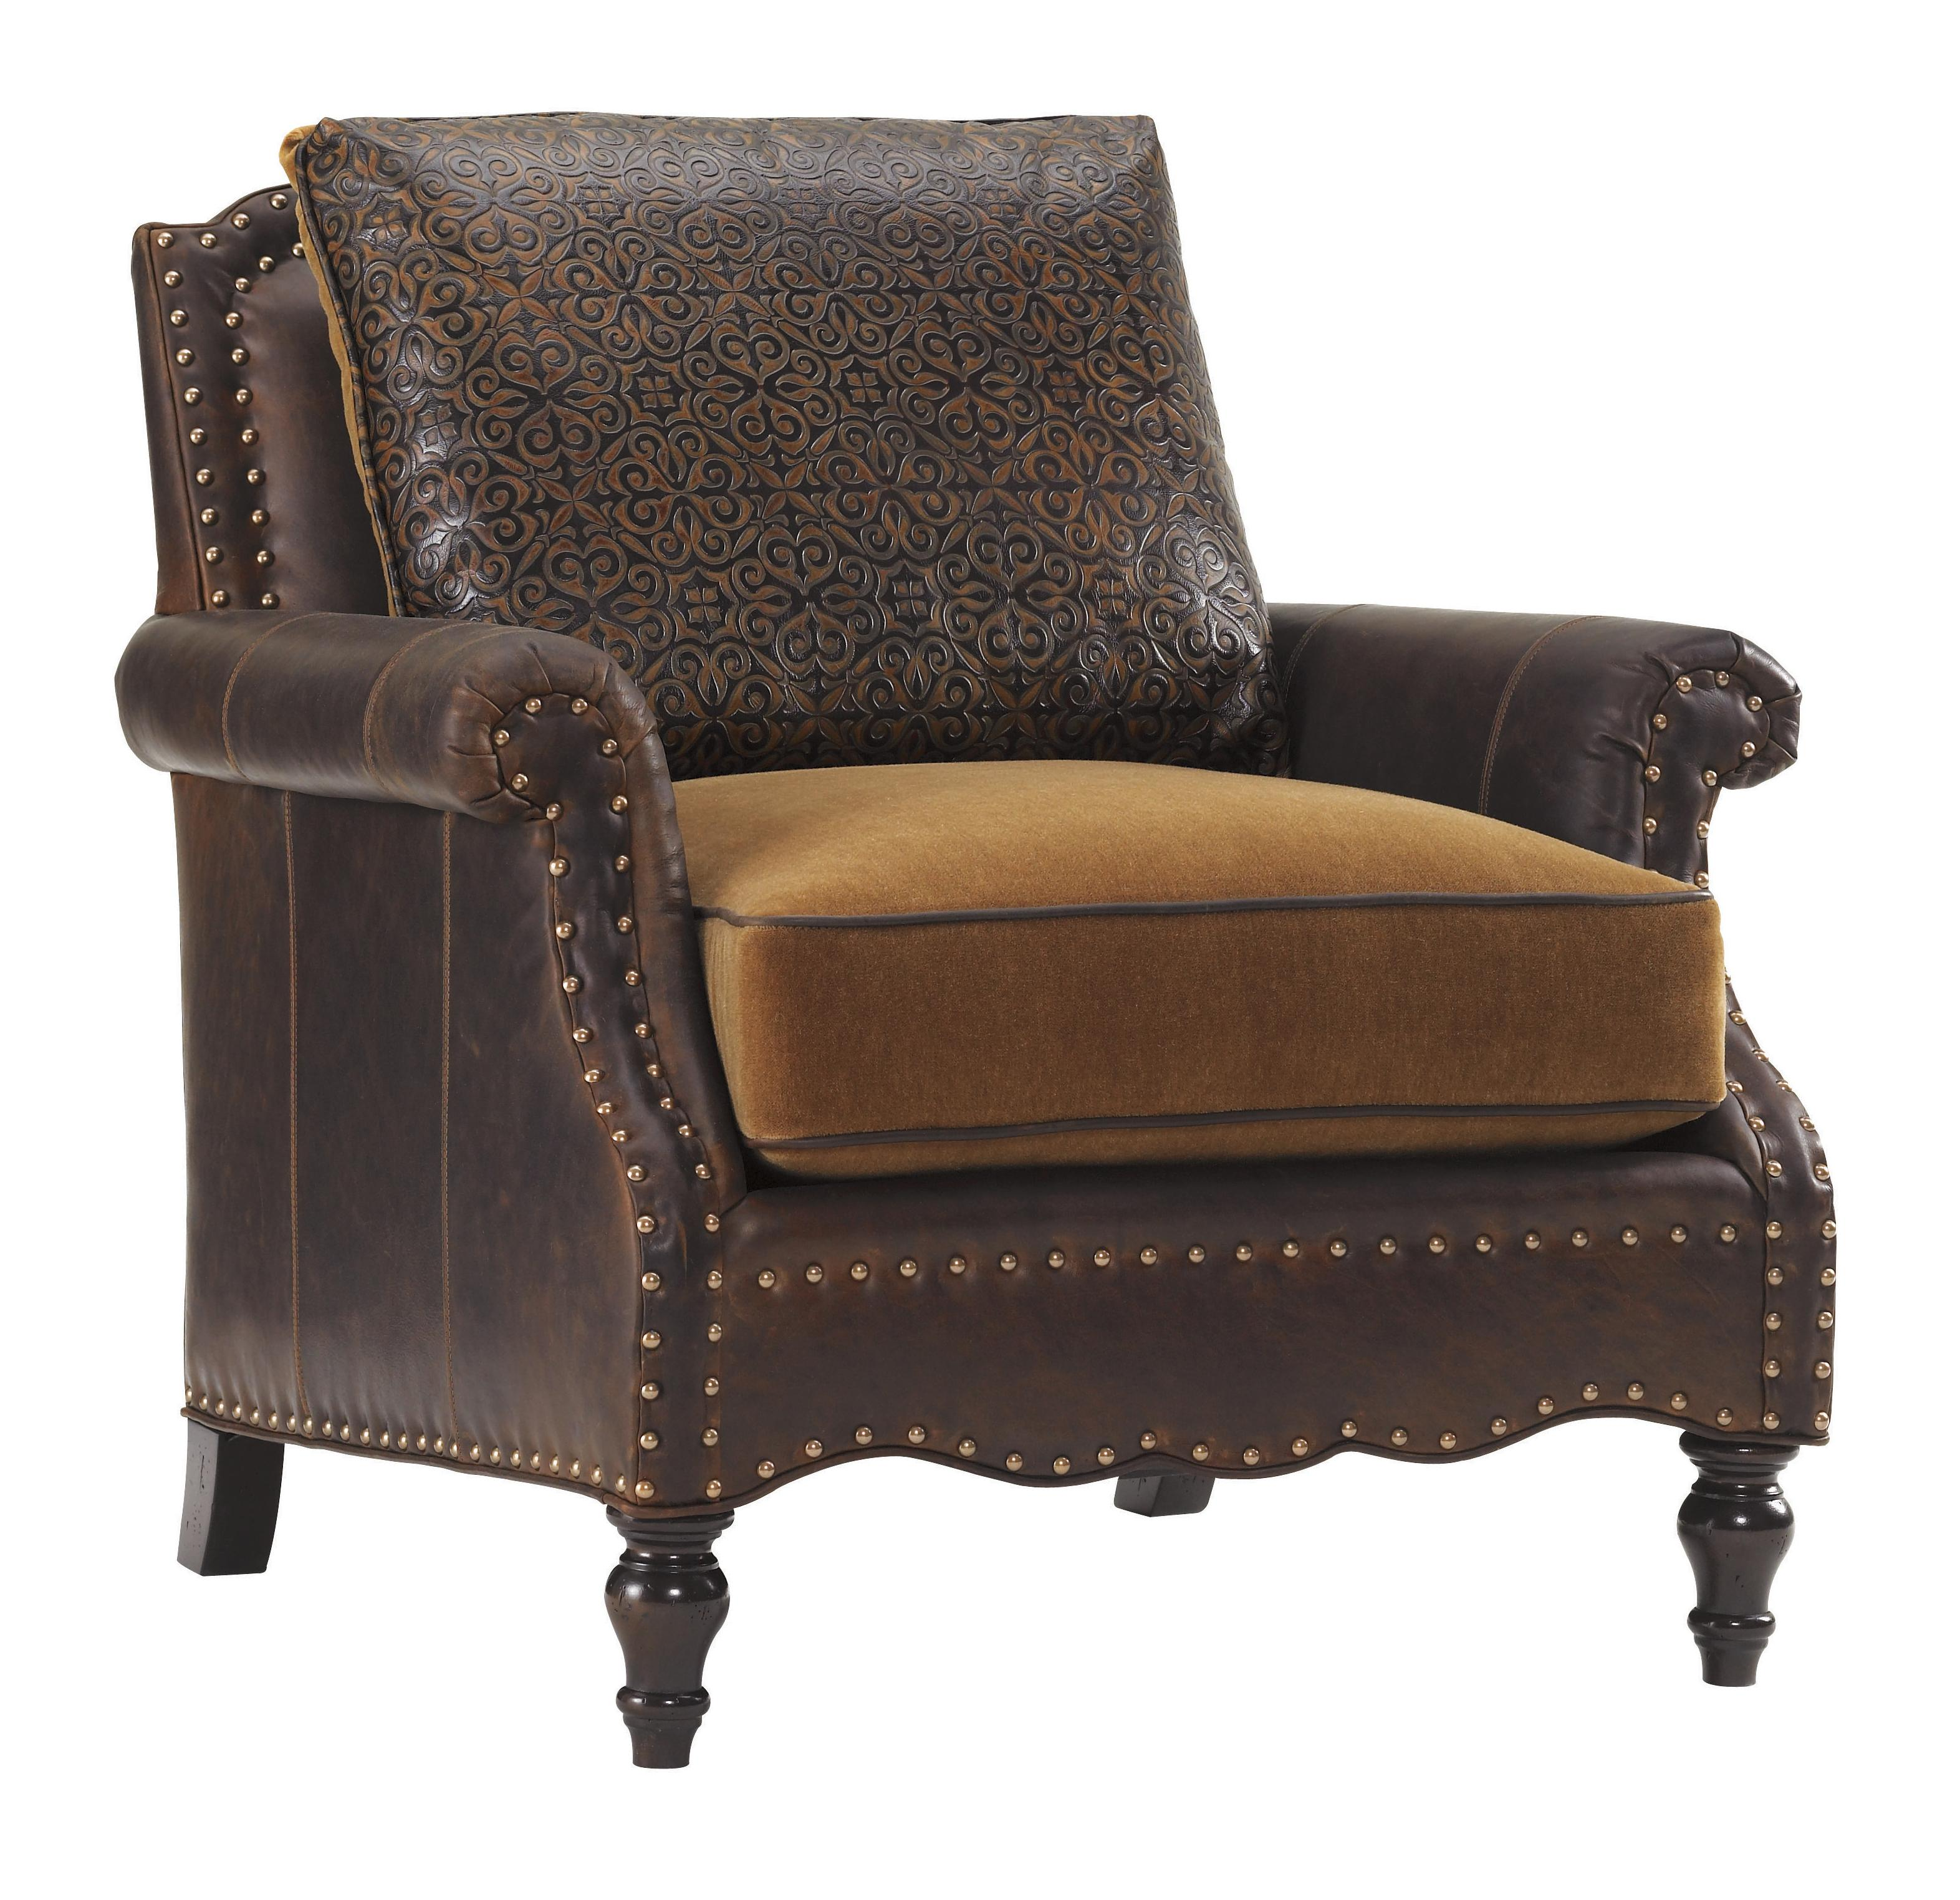 Tommy Bahama Upholstery Belgrave Leather Chair (married cover) by Tommy Bahama Home at Baer's Furniture